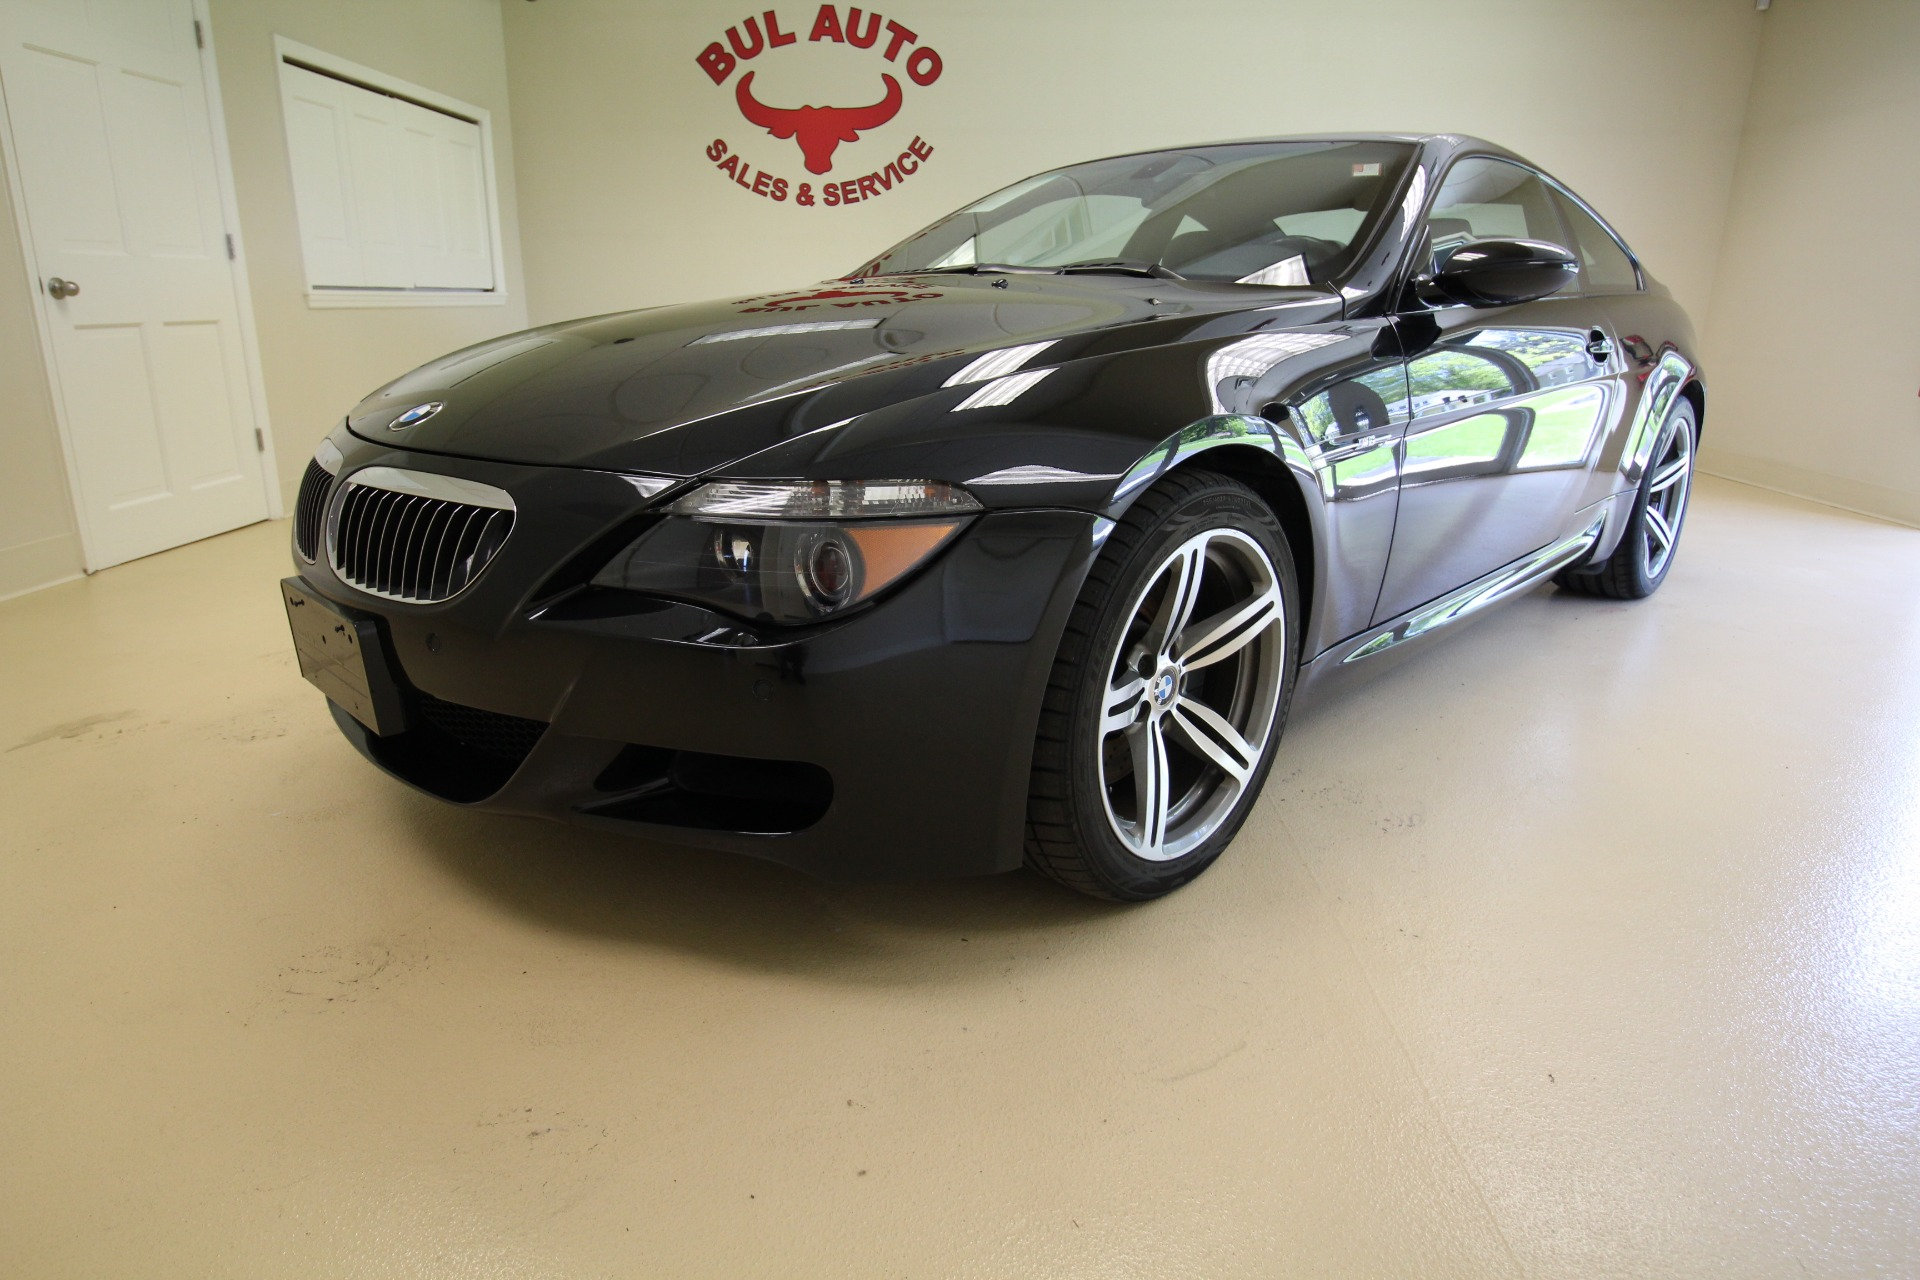 2006 Bmw M6 Coupe Stock 19077 For Sale Near Albany Ny Ny Bmw Dealer For Sale In Albany Ny 19077 Bul Auto Sales